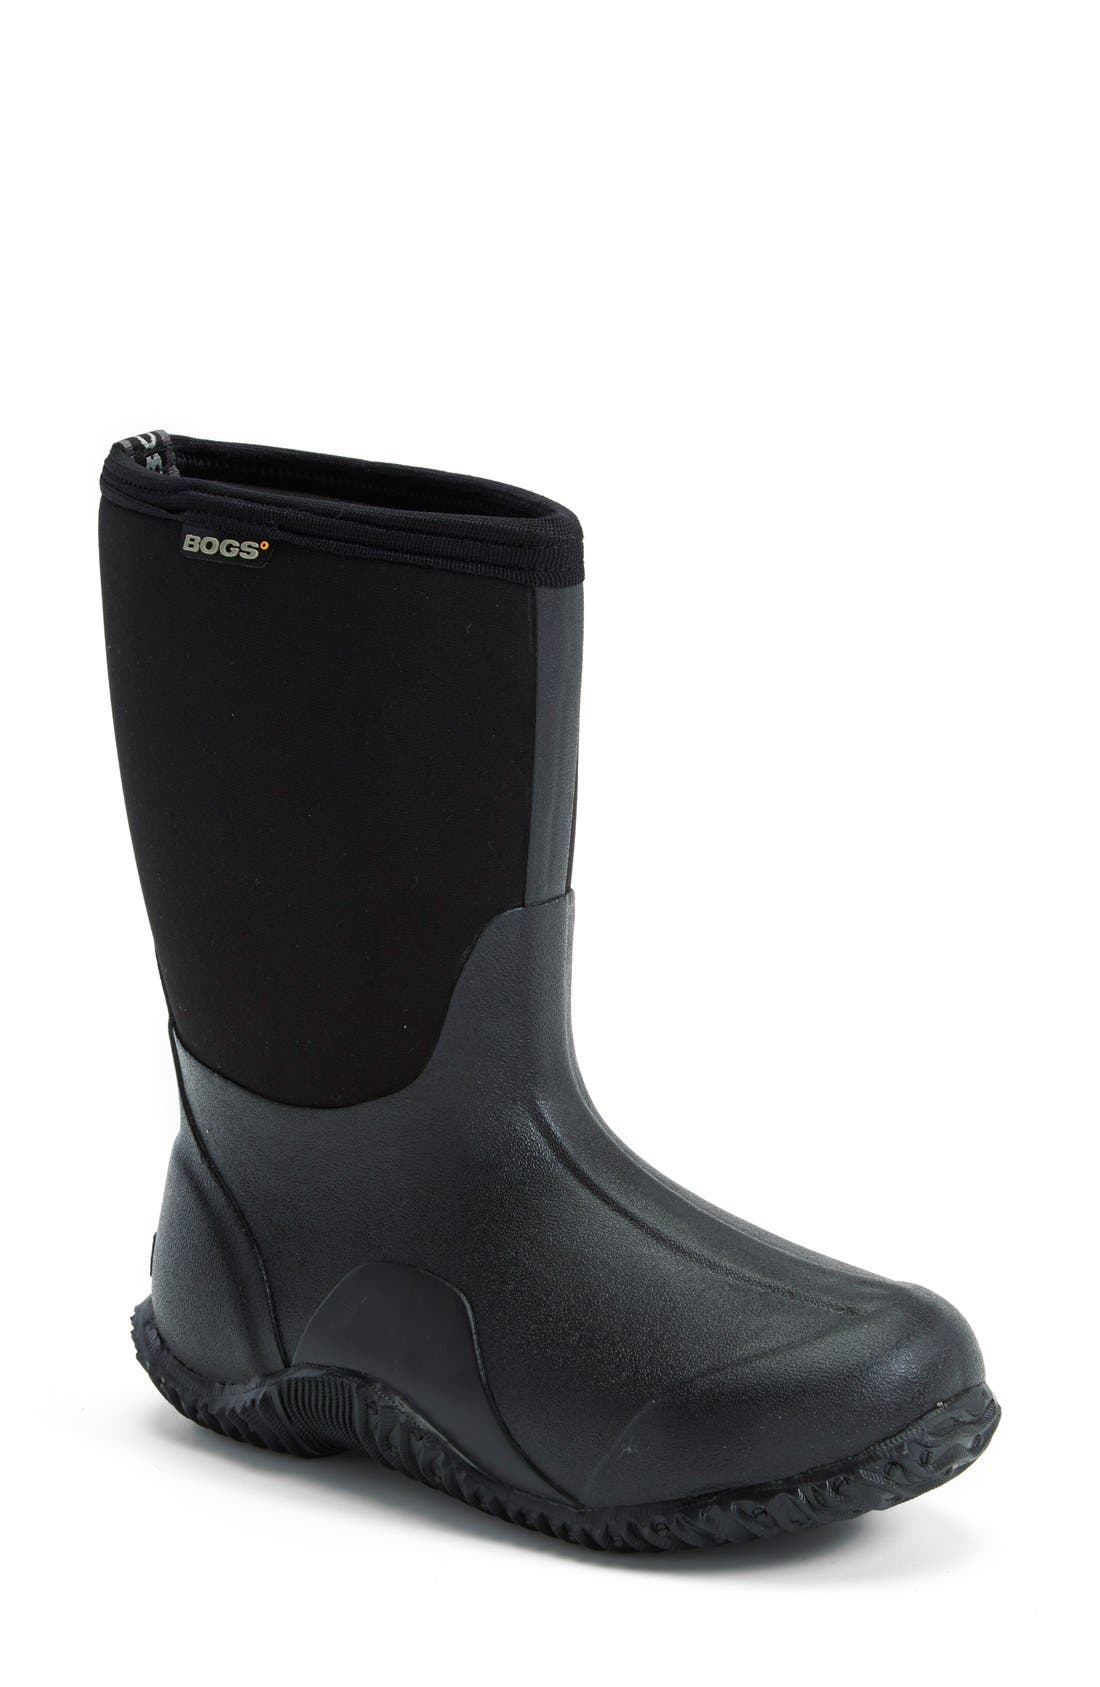 Alternate Image 1 Selected - Bogs 'Classic' Mid High Waterproof Snow Boot (Women)